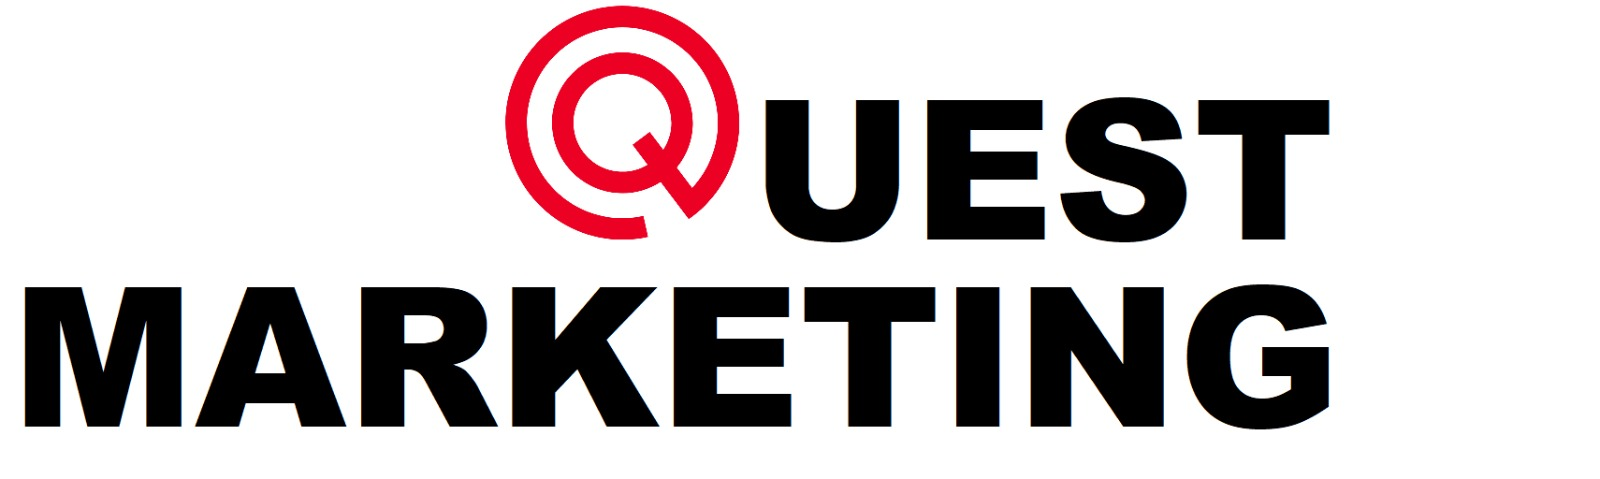 In samenwerking met QUEST Marketing biedt Sander Kuiper van SK Online Marketing je nu ook Marketing Automation!